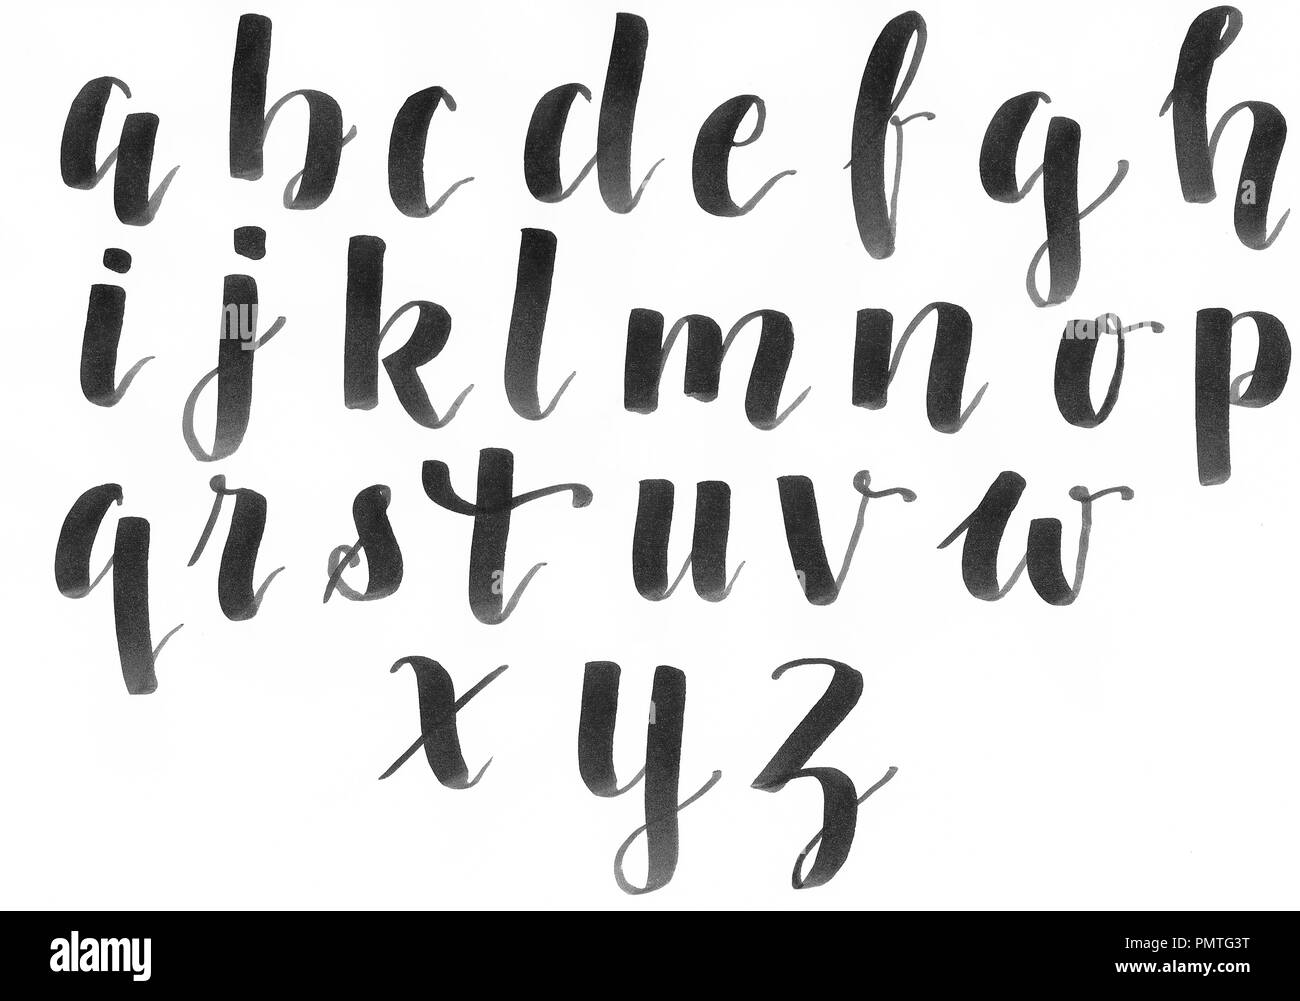 Hand lettering, modern calligraphy alphabet in black on a white